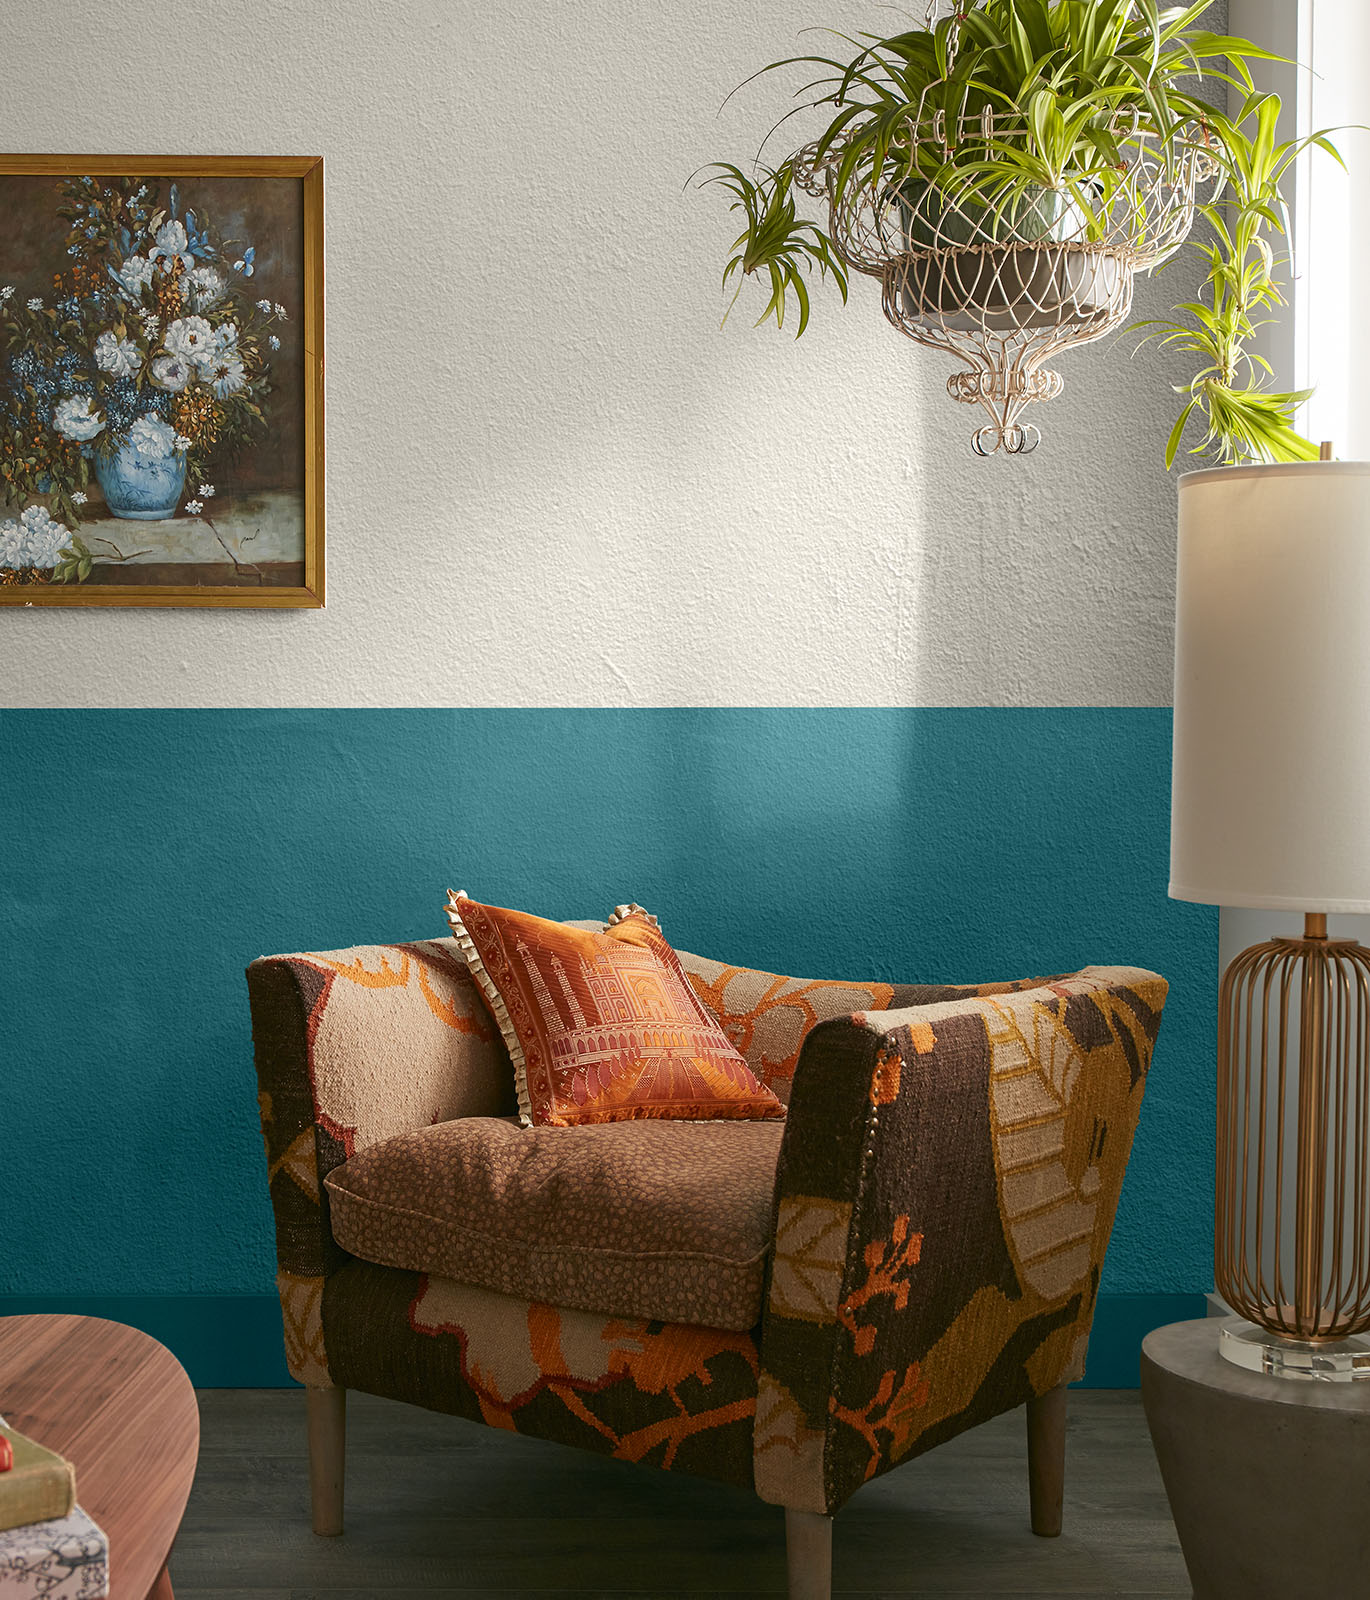 A sitting area with the walls painted in white and blue. A comfy chair sits in the corner. The mood is buoyant.